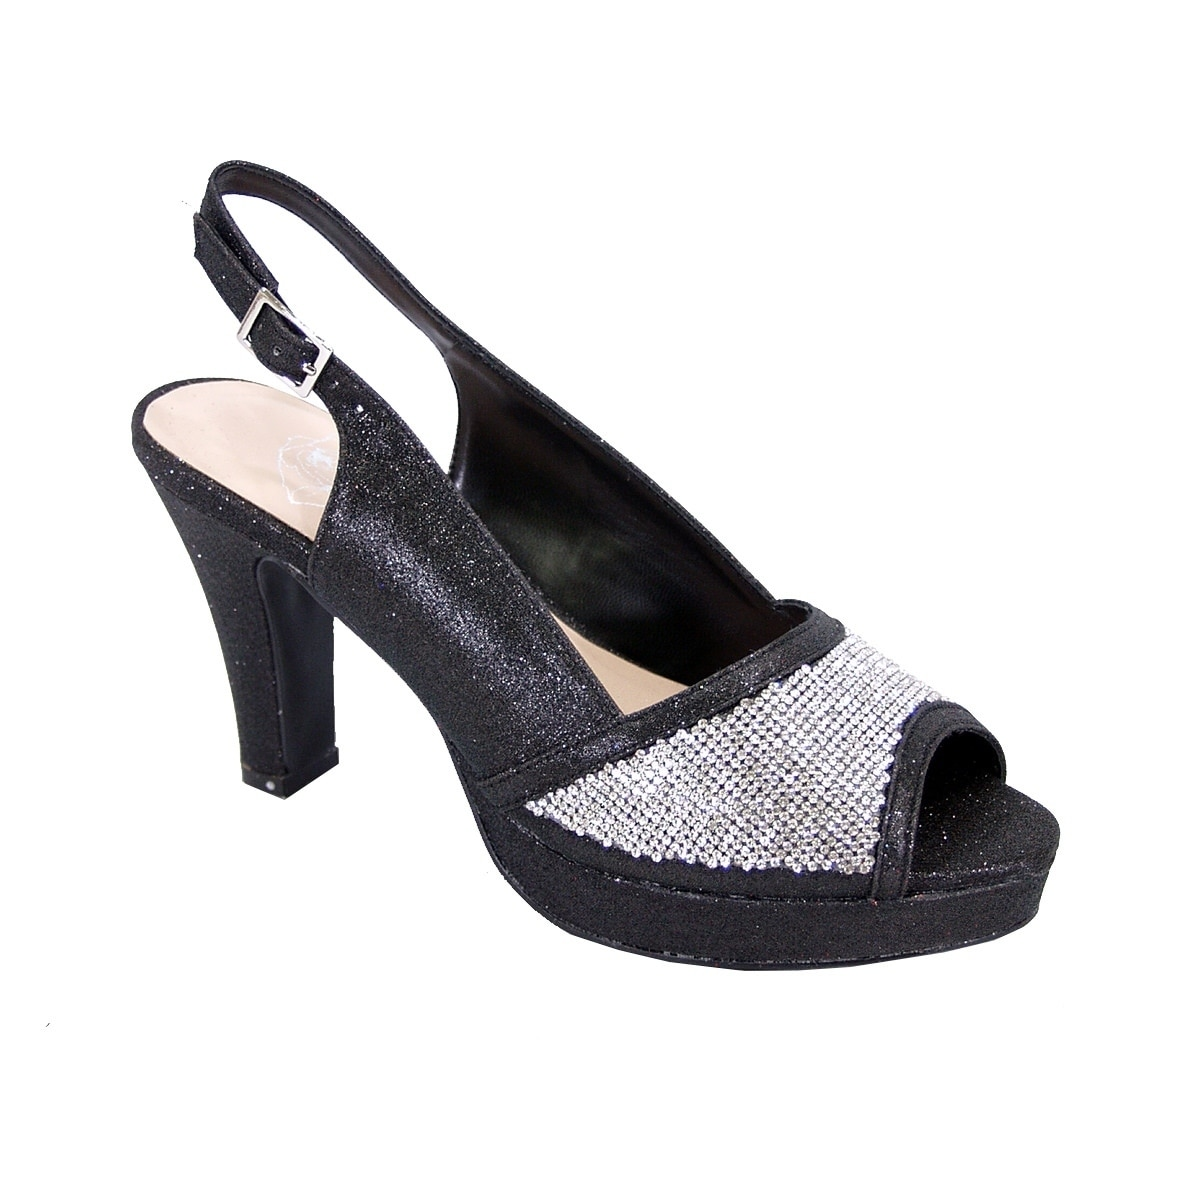 2752d922461dc Buy Size 5 Sling Back Women's Heels Online at Overstock | Our Best ...